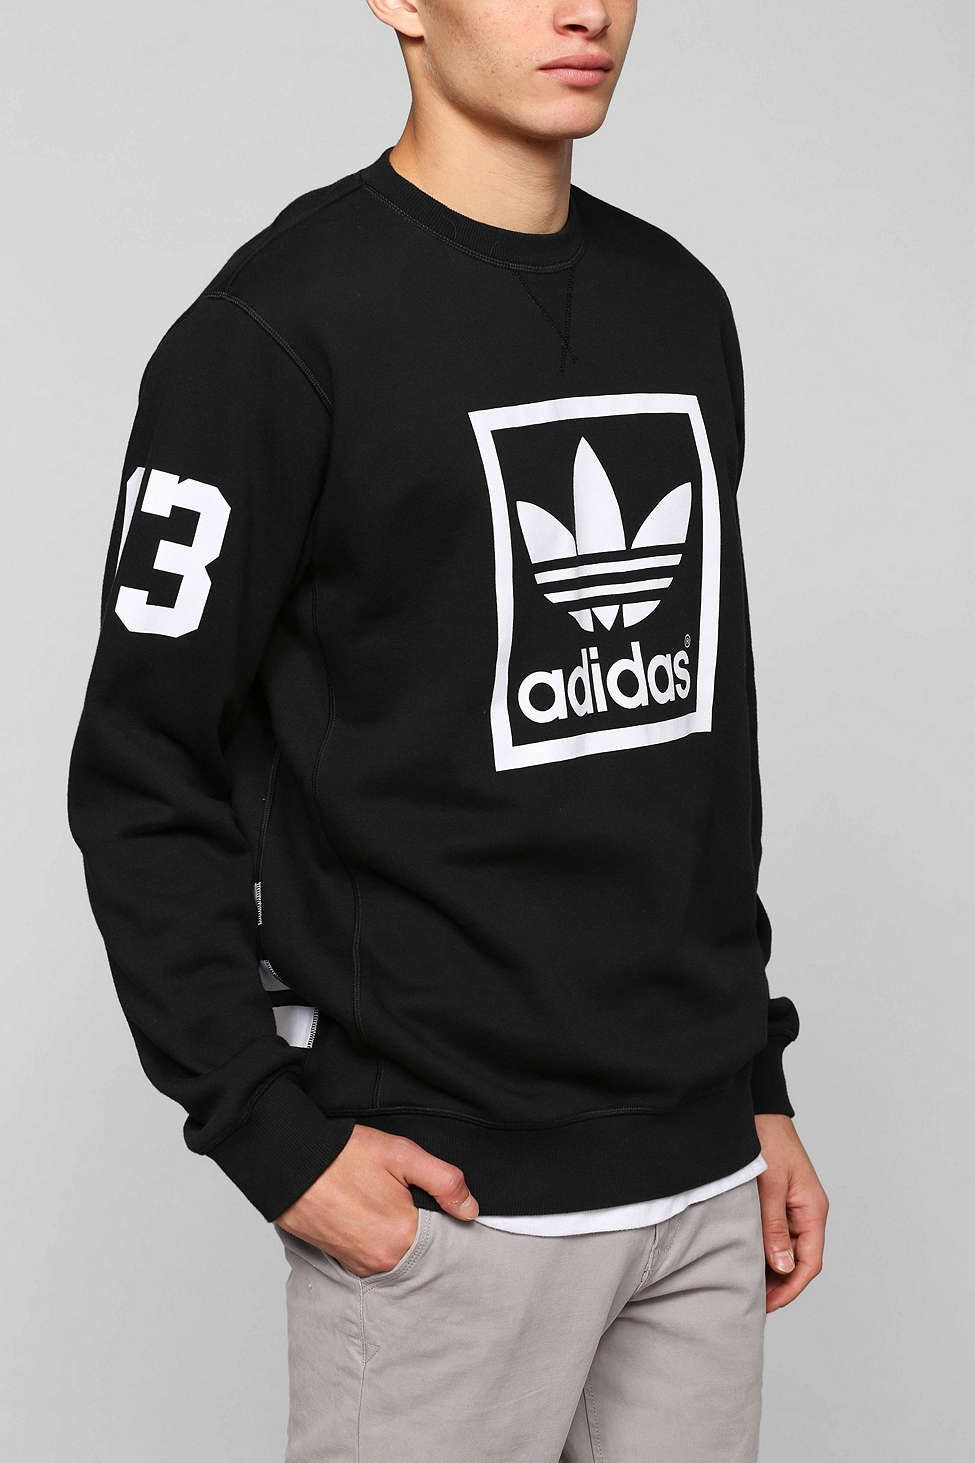 adidas Originals Trefoil Crew neck Sweatshirt | Addidas